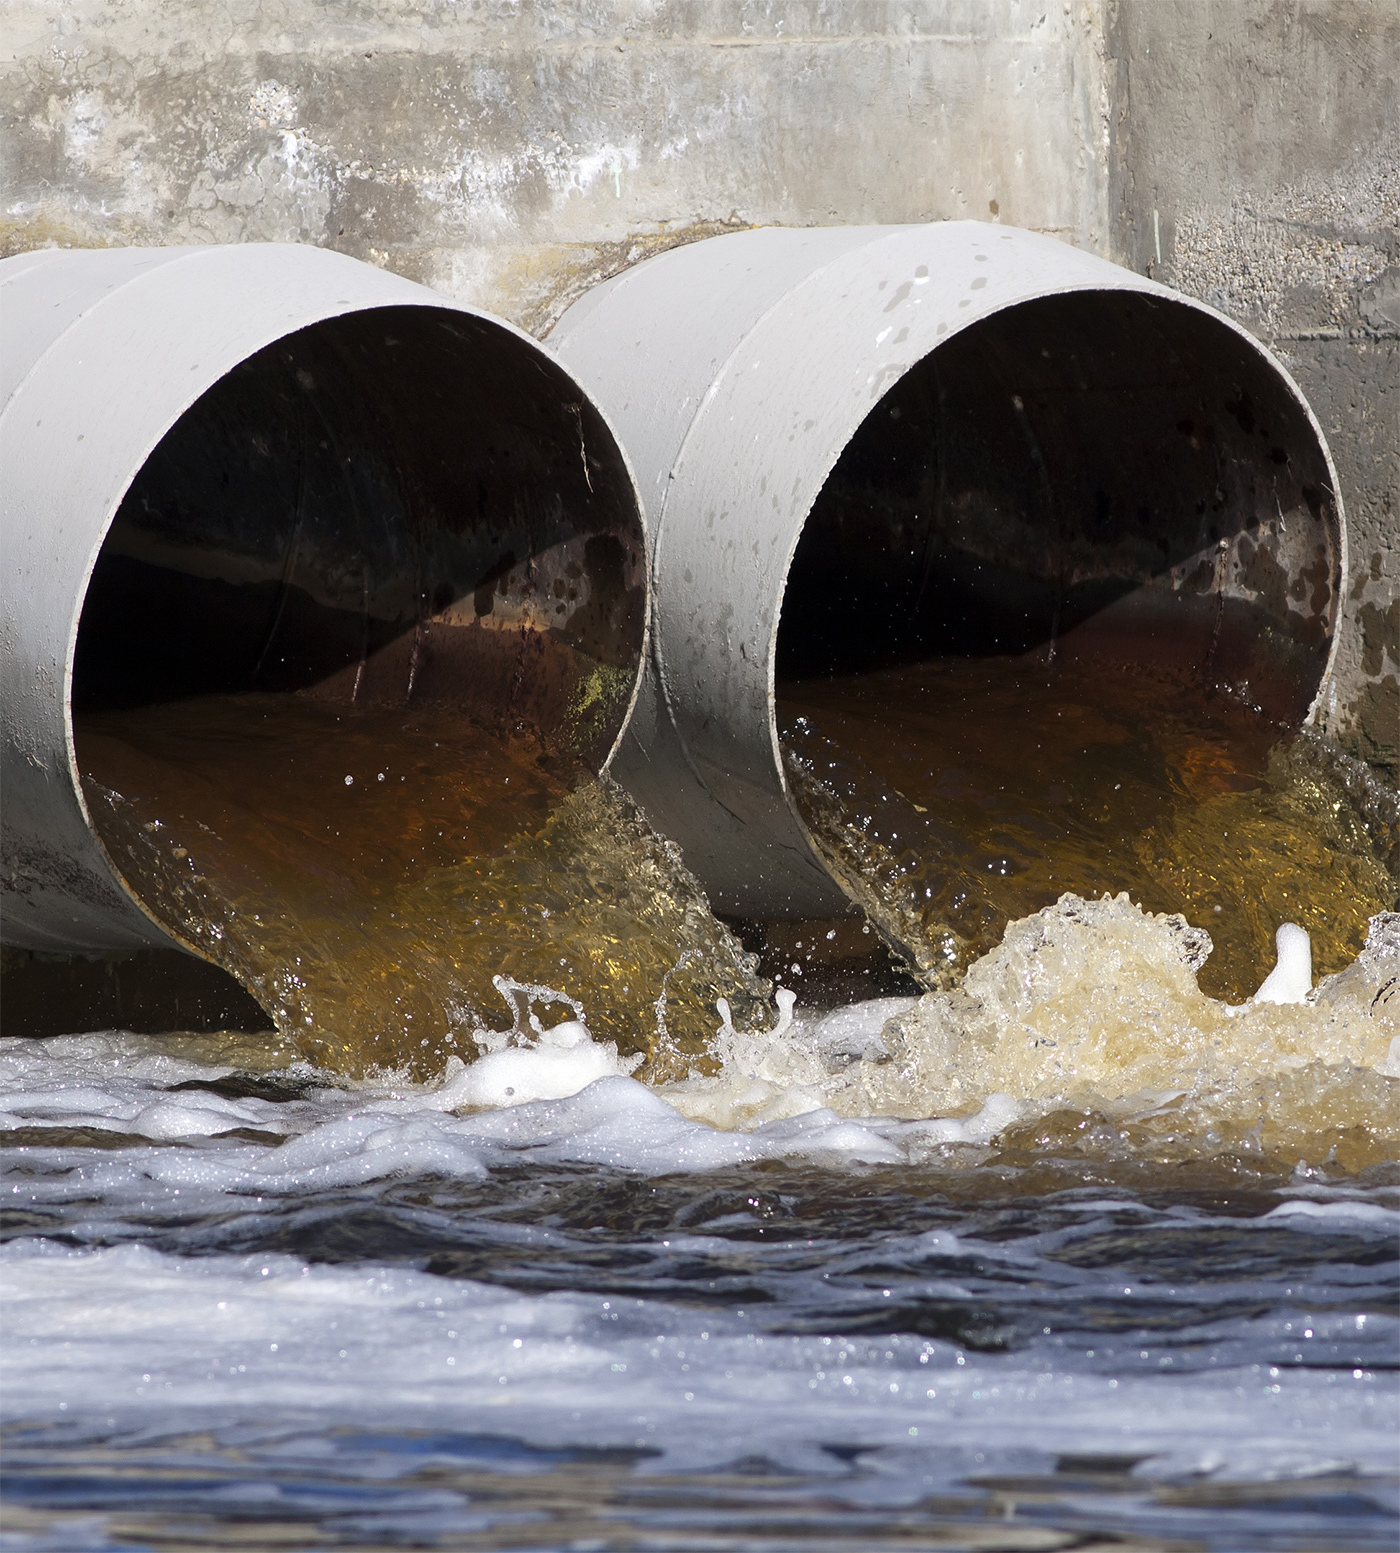 By EPA estimates, combined sewer overflows occur between 23,000 and 75,000 times every year.